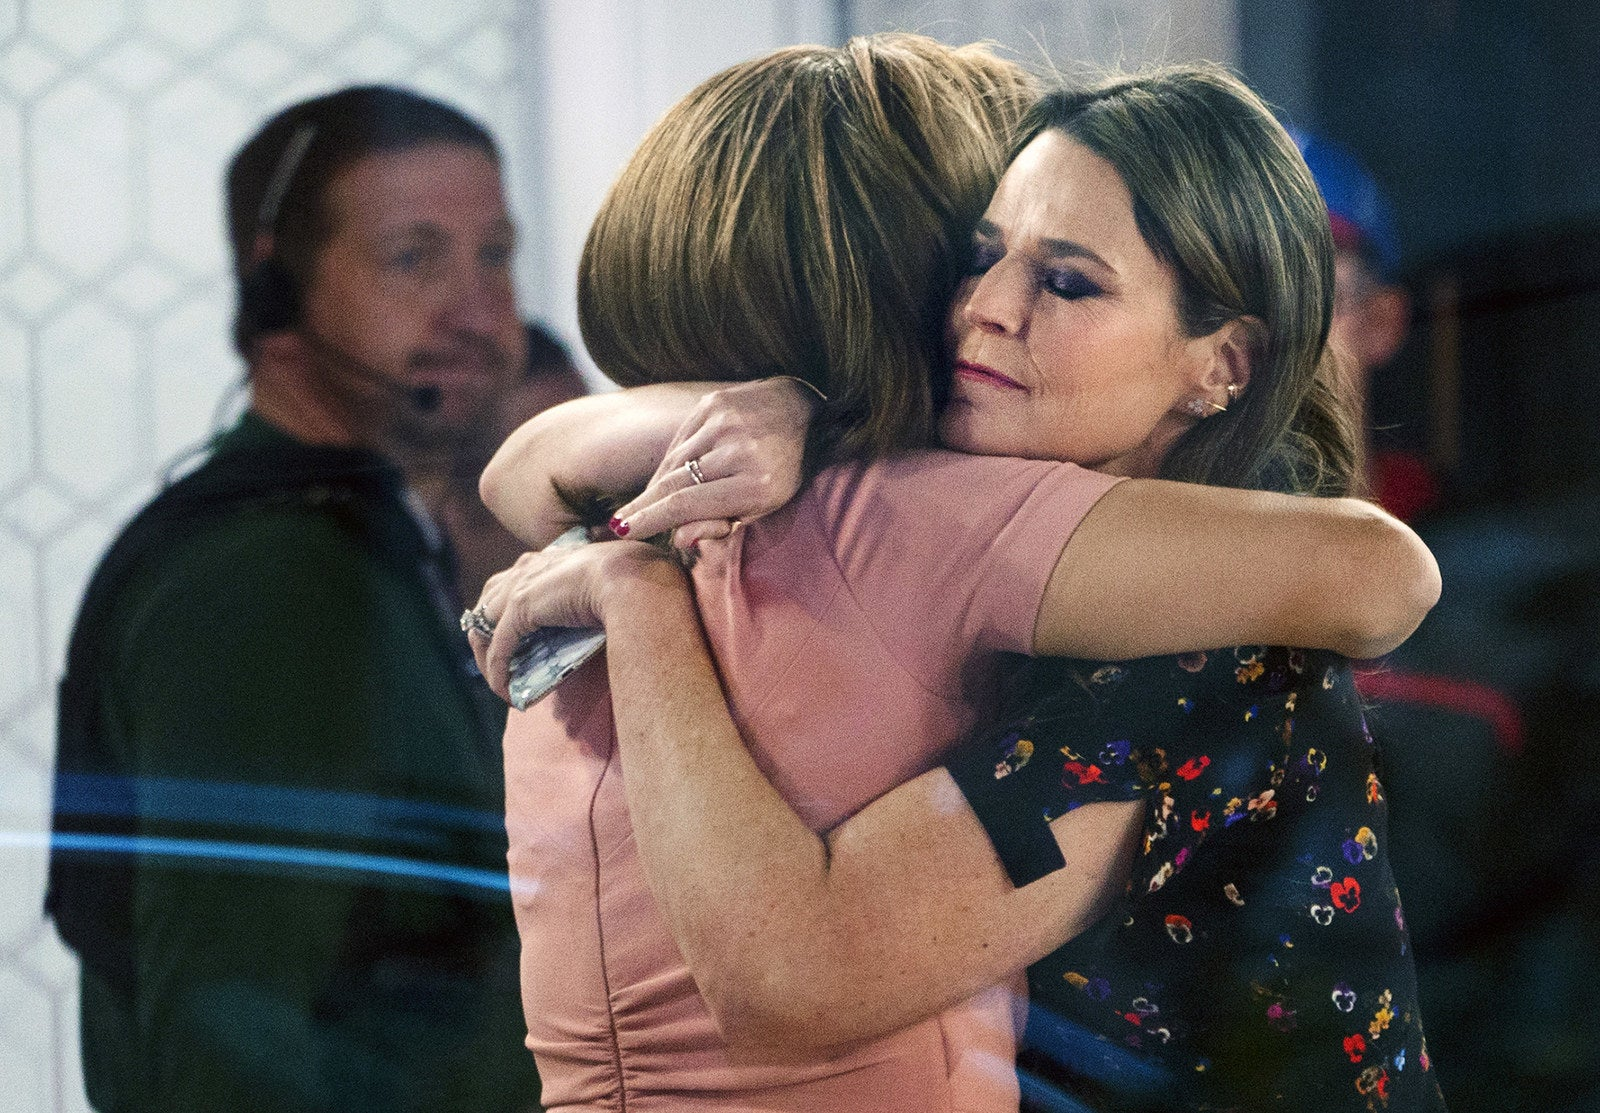 """Coanchors Hoda Kotb (left) and Savannah Guthrie (right) embrace on the set of the Today show on Nov. 29, in New York, after NBC News fired host Matt Lauer. NBC News announced that Lauer was fired for """"inappropriate sexual behavior."""""""